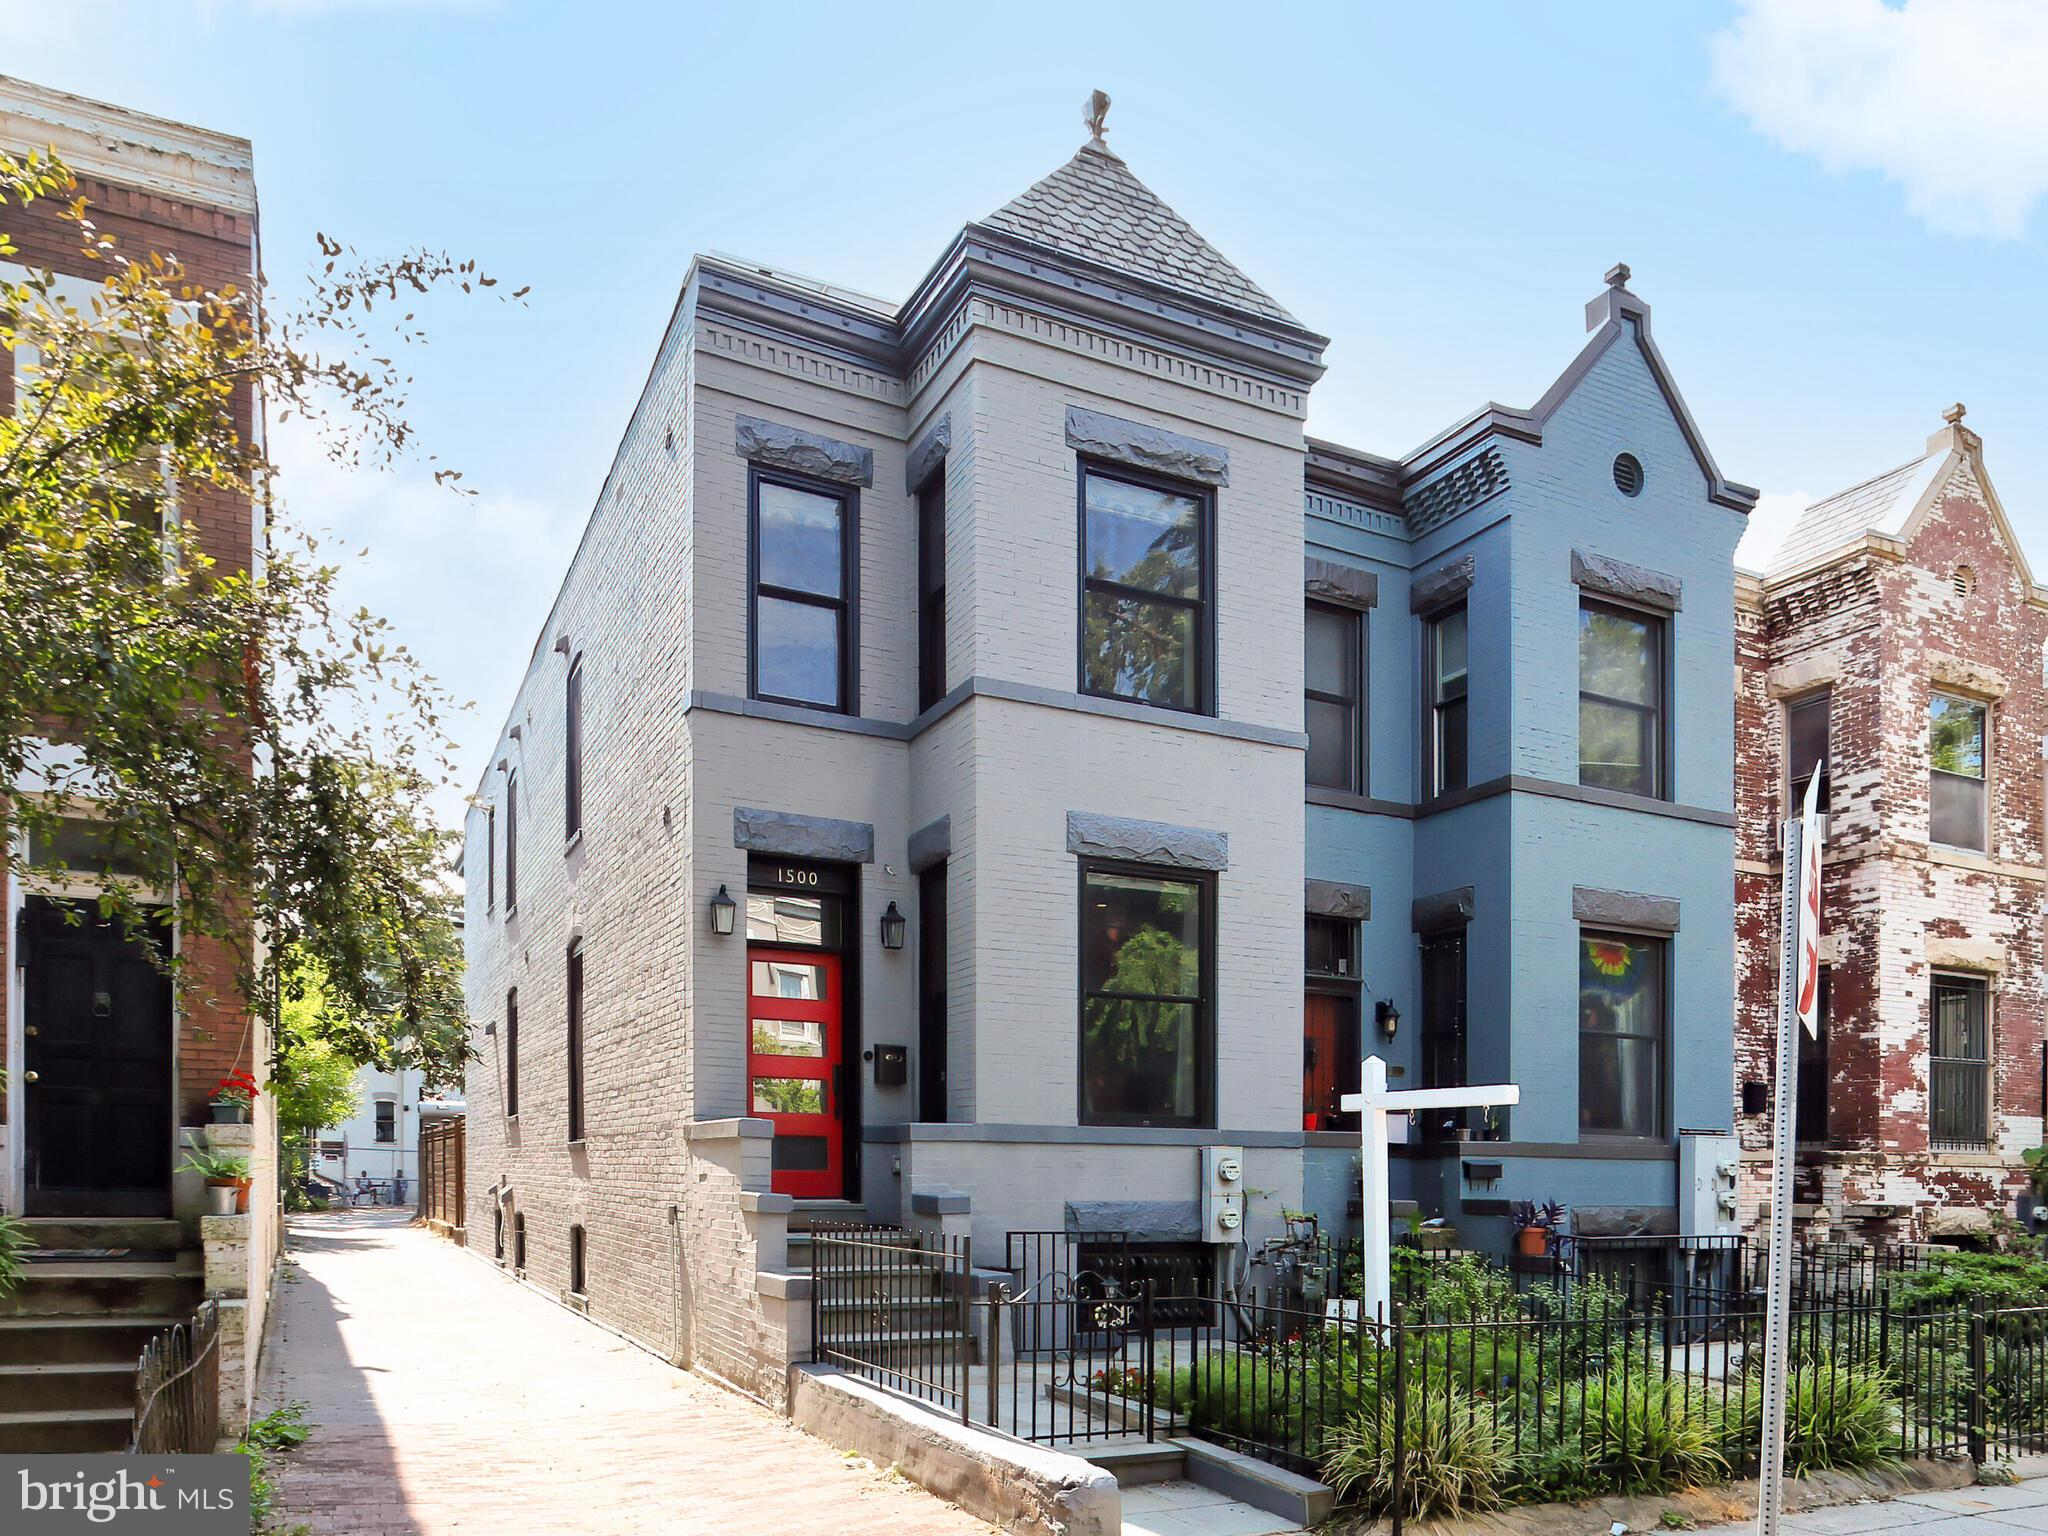 """Welcome to 1500 Monroe, Reimagined and Completely Remodeled in 2017!  Custom Features Throughout this End Unit Row Home with 2 Car Parking, just Steps to all Columbia Heights and Mount Pleasant has to Offer, Including Award-Winning Restaurants, Retail, & Farmers Markets!  1500 Monroe is Where Functional Living Meets Creative Design.  From the Custom Closets to Showcasing the Reclaimed Wood from the Original 1909 Construction,  this Home will Surpass your Expectations.  The Highlights: Top to Bottom Remodel in 2016-2017, to Include Electrical and Plumbing, Solar Panels by Solar Solution, New Roof in 2018, 2 HVAC Units by Carrier Infinity, Shaker Style Cabinets with Cove Details, Bosch/Whirpool Appliances, Exposed Brick Wall, Wet Bar with High End Summit Wine Fridge, Custom LED Lighting, and Much More. The Second Level has 3 Bedrooms and 2 Full Baths, Both with Double Vanities, a Skylight, Balcony, Washer/Dryer, Custom Closets, Built Ins, Custom Lighting. Transoms and Cove throughout!  Now to the Lower Level, Once a 2 Unit Building but Now Open for Single Family Enjoyment this Home is Easily Converted Back.  You'll Find, a Full Kitchen, Living Room, Bedroom, 2 Separate Entrances, Full Bath, Washer/Dryer, Separately Metered, and its own HVAC.  9'6"""" Ceiling Heights on Main Level, 9' on Second Level, and 8' on LL.  This home Shines Throughout, Don't Miss Out!"""